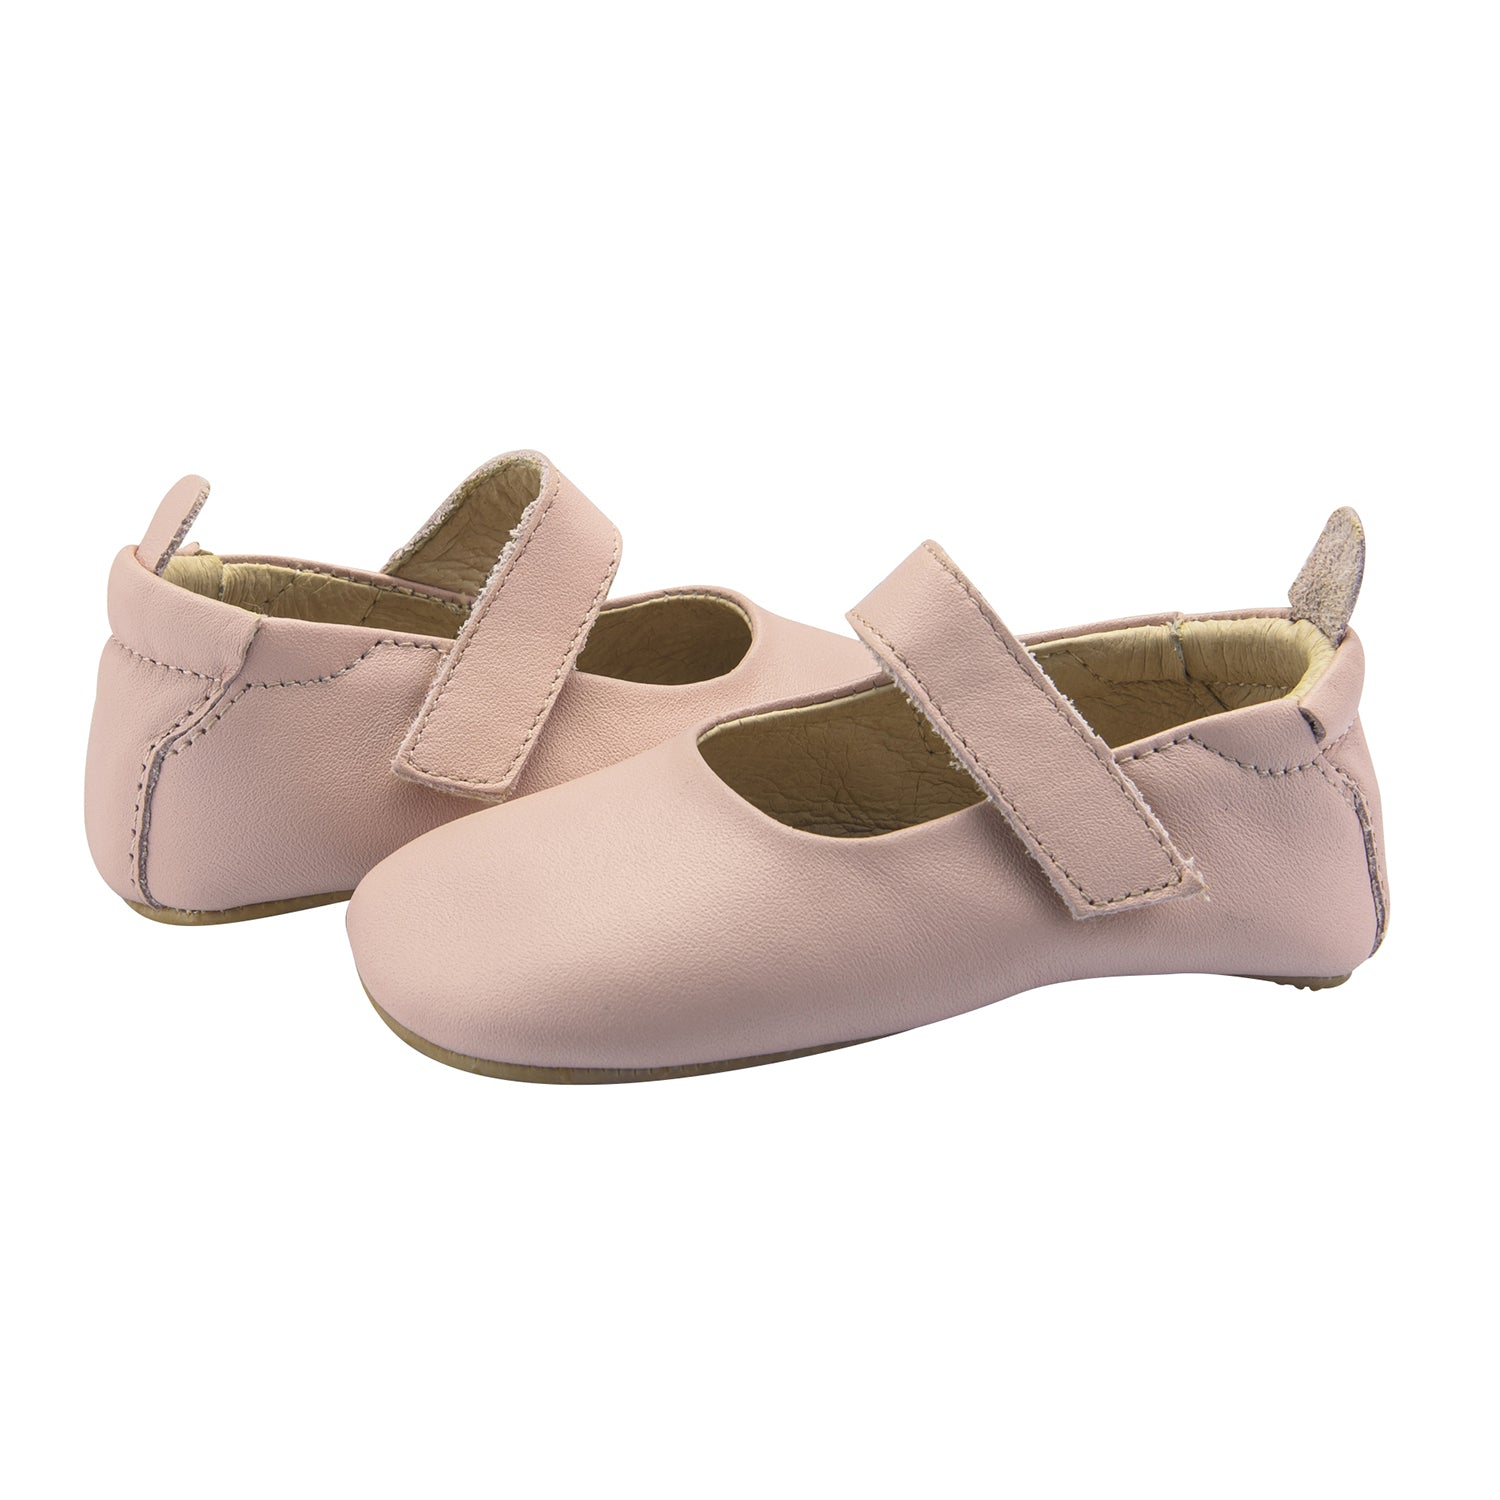 Old Soles Gabrielle Powder Pink Rubber